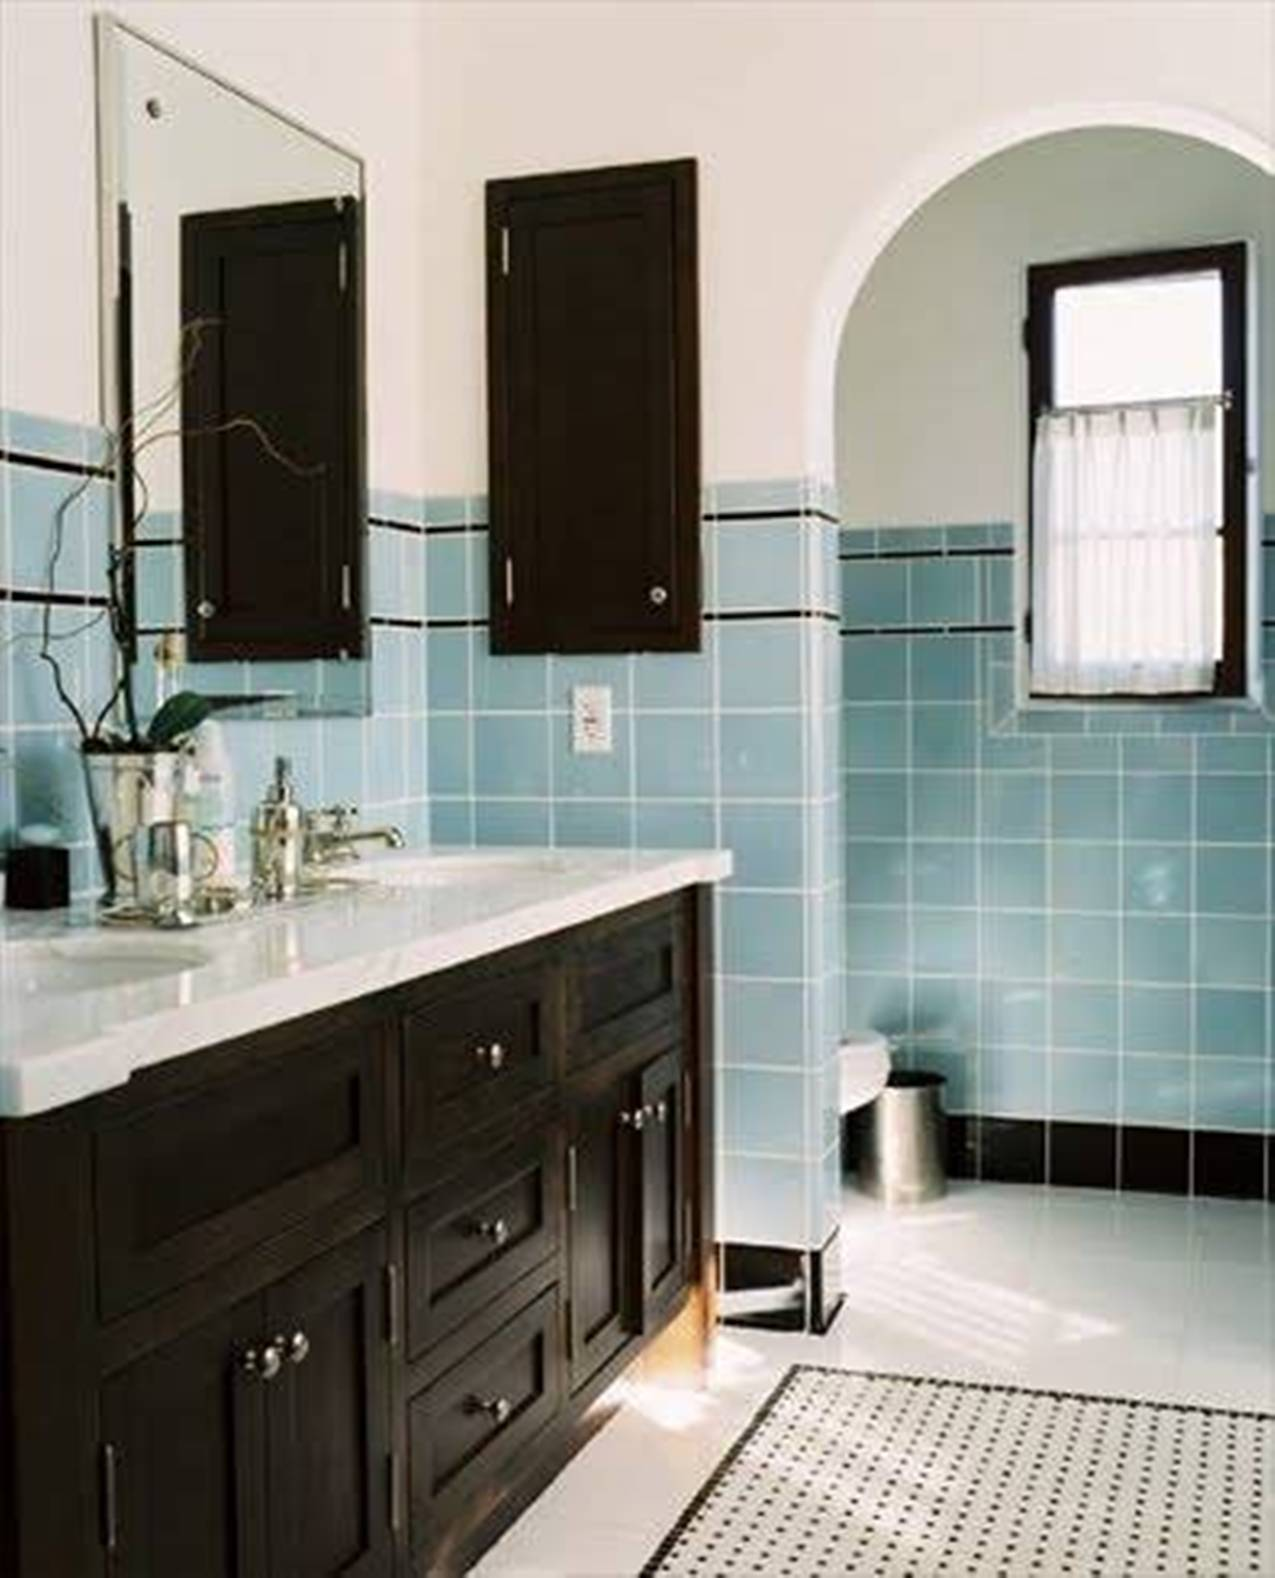 45 magnificent pictures of retro bathroom tile design ideas for Bathroom ideas black tiles